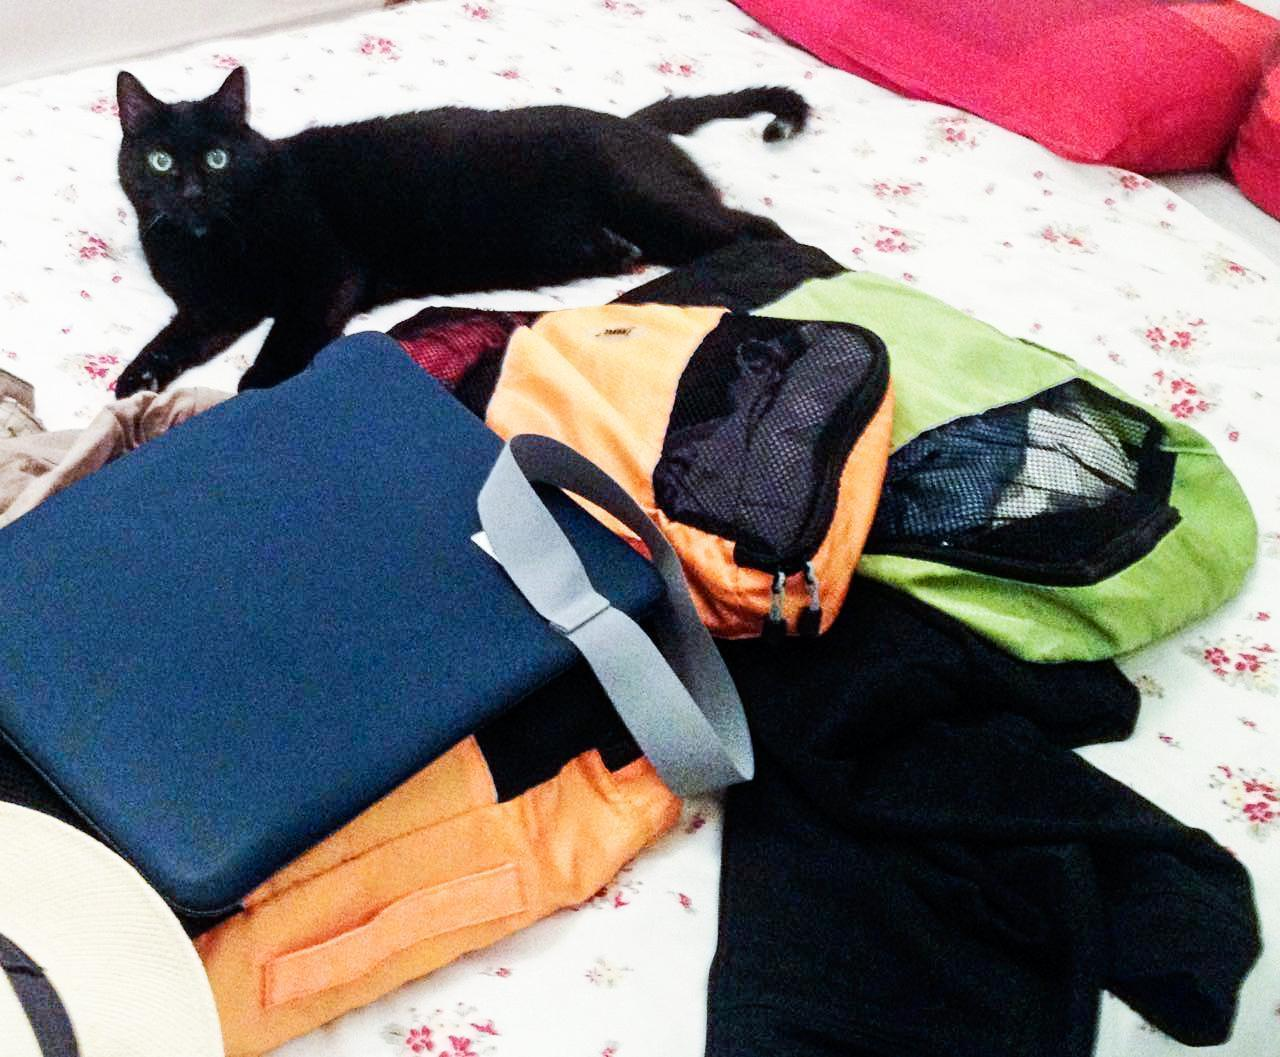 Our eBags have traveled the world (Buddy cat for scale).